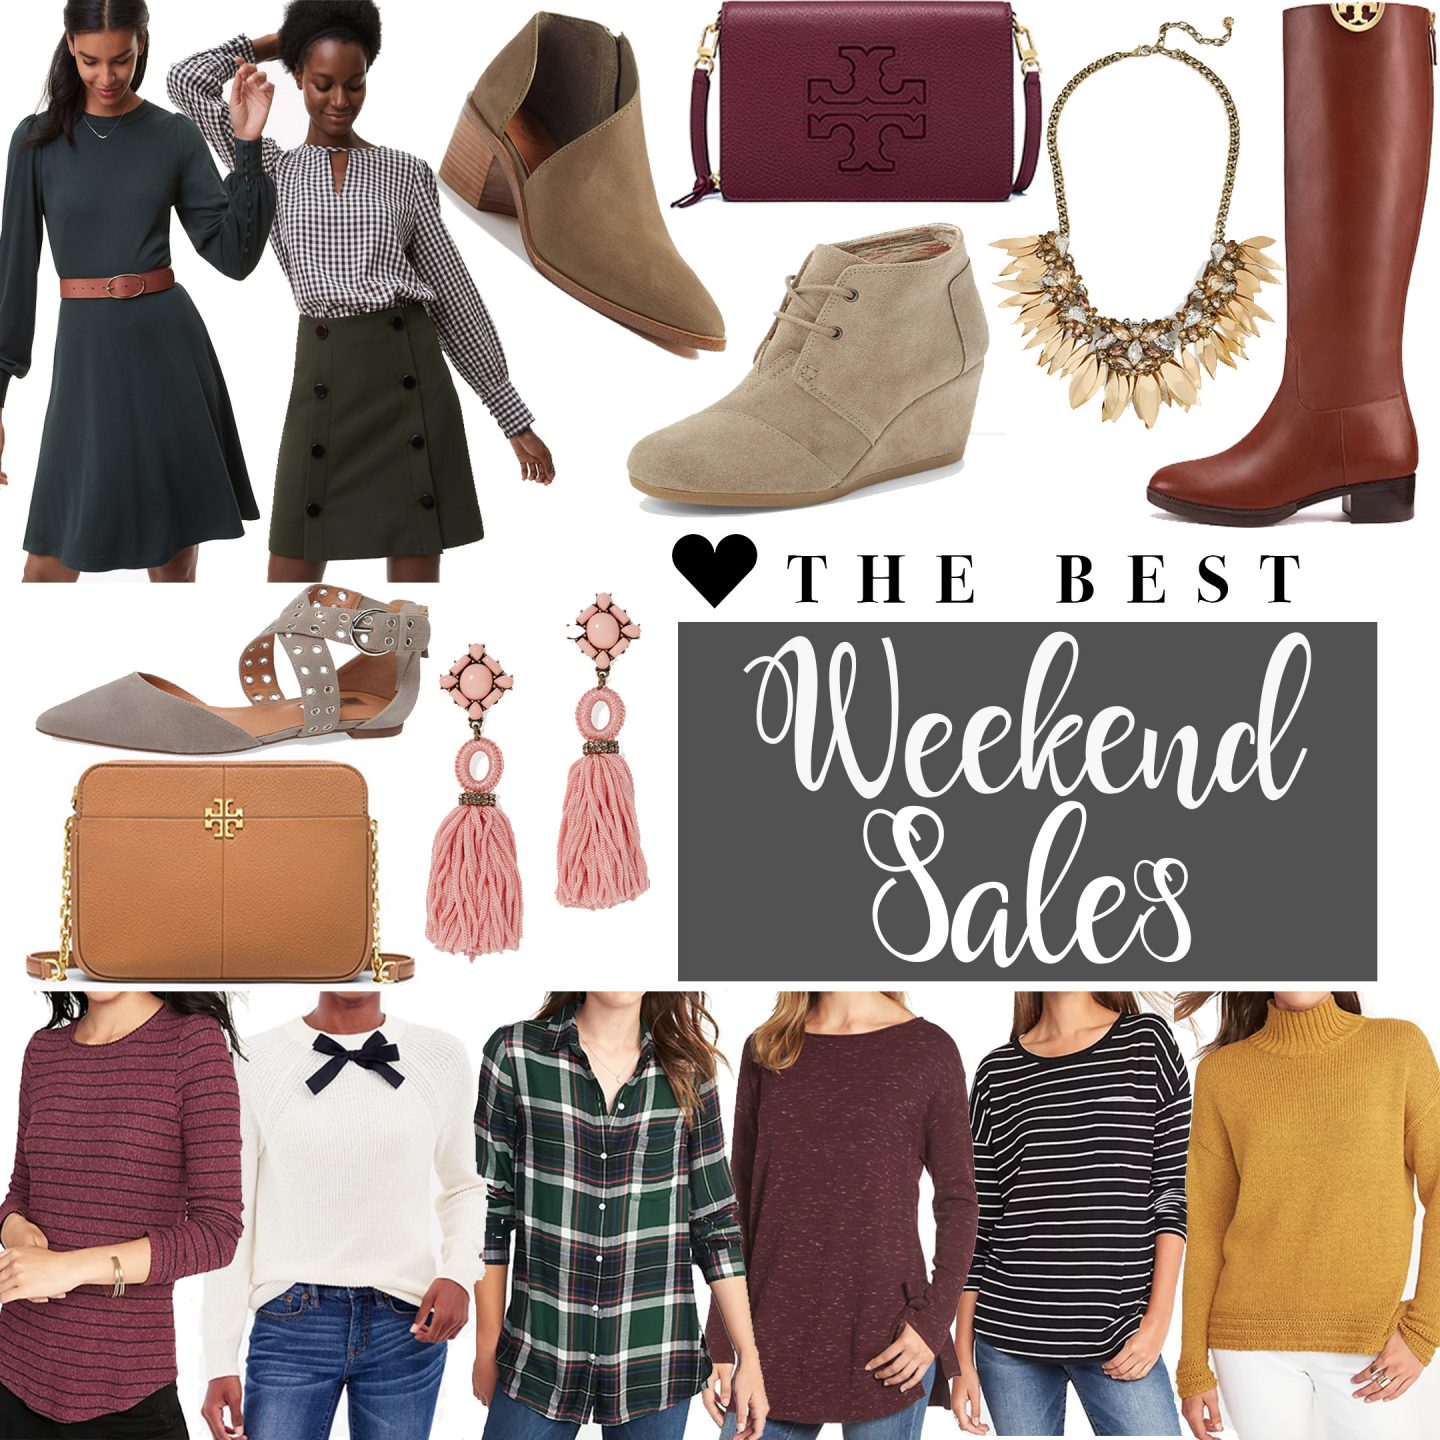 Weekend Sales Favorites by Washington DC fashion blogger Styled Blonde